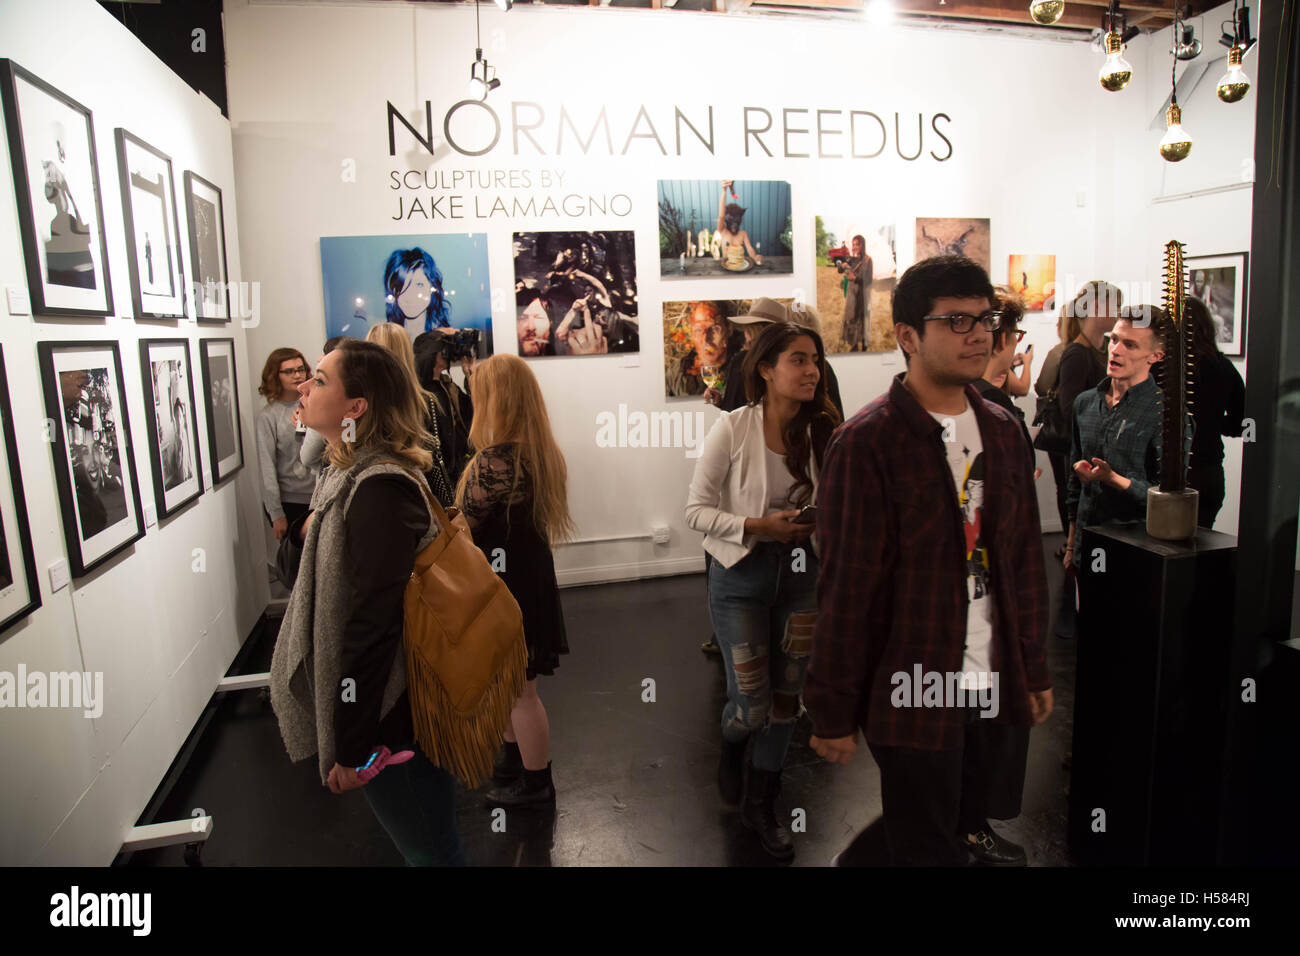 Guest atmosphere at Norman Reedus: A Fine Art Photography Exhibition at Voila! Gallery on November 12, 2015 in Los Angeles, California, USA Stock Photo